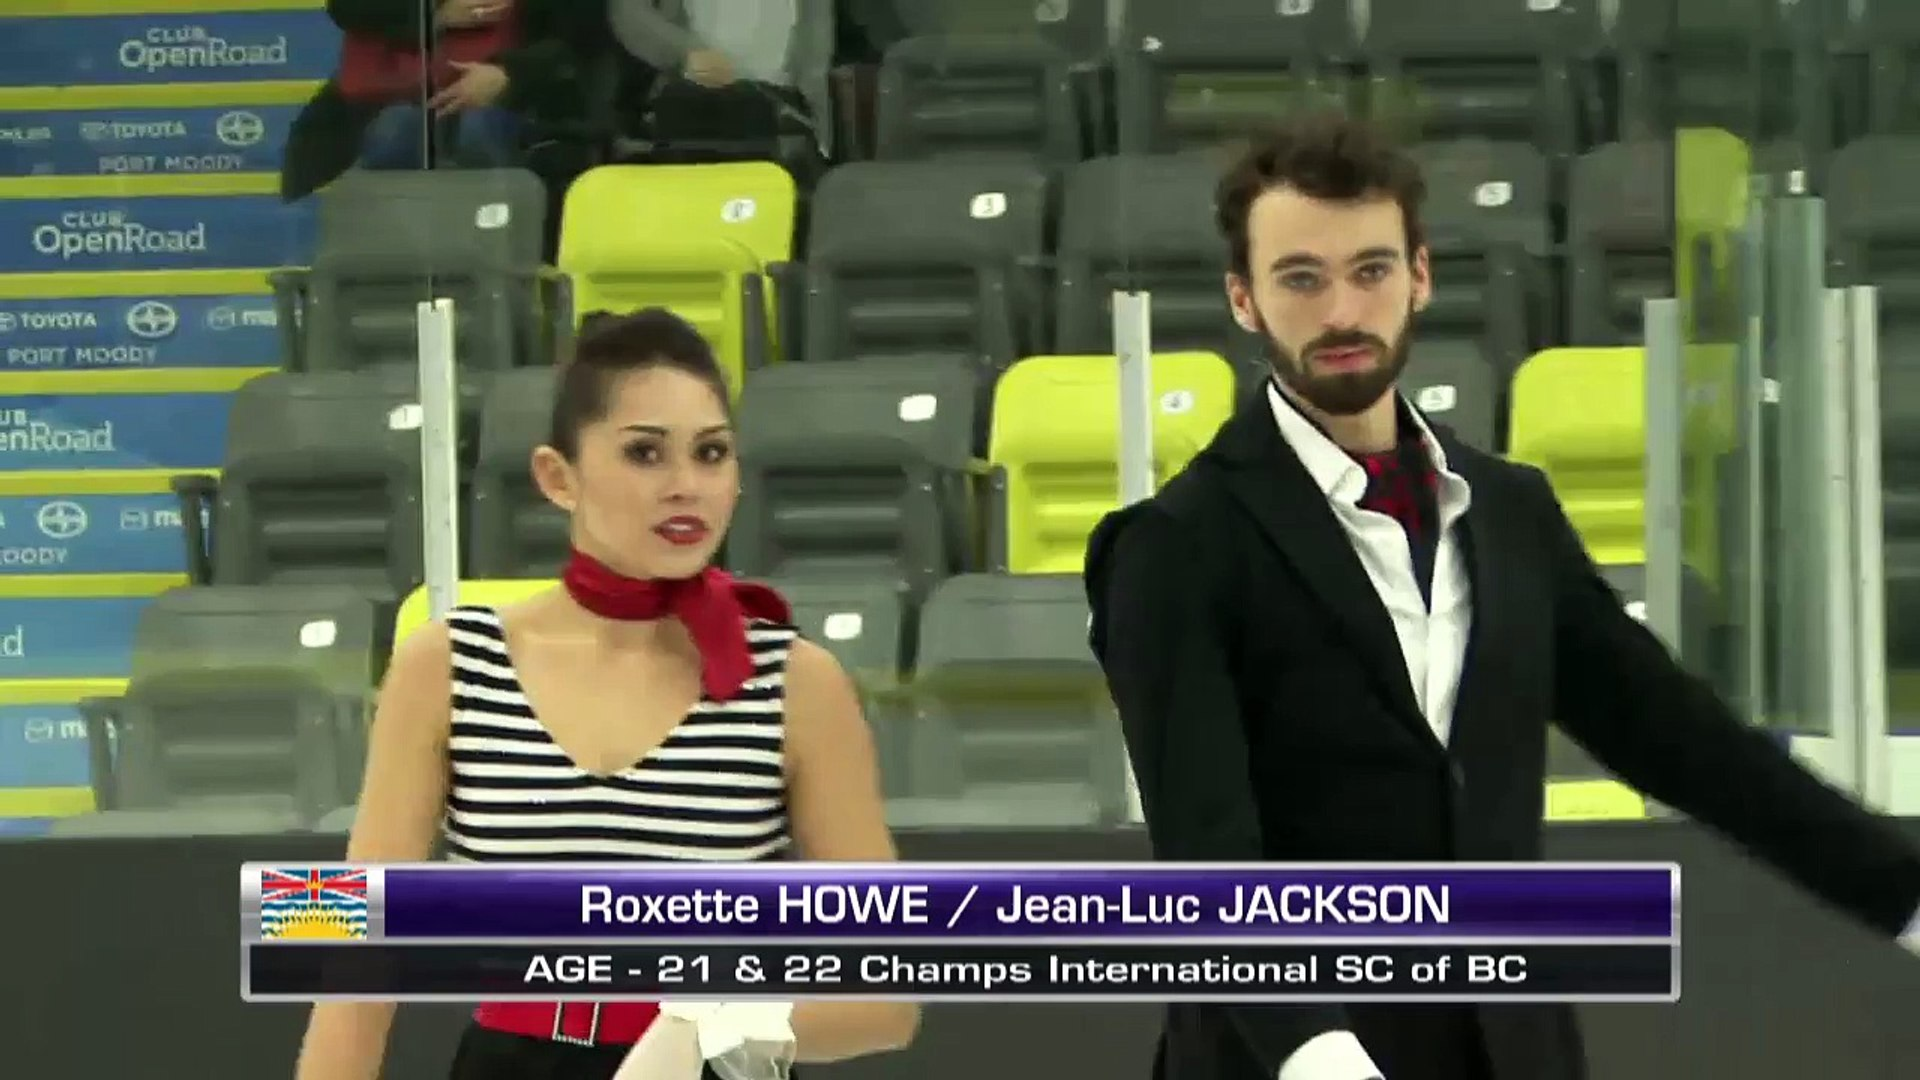 Roxette Howe/Jean-Luc Jackson - Senior Short Dance - 2016 Skate Canada BC/YK Sectional Championships